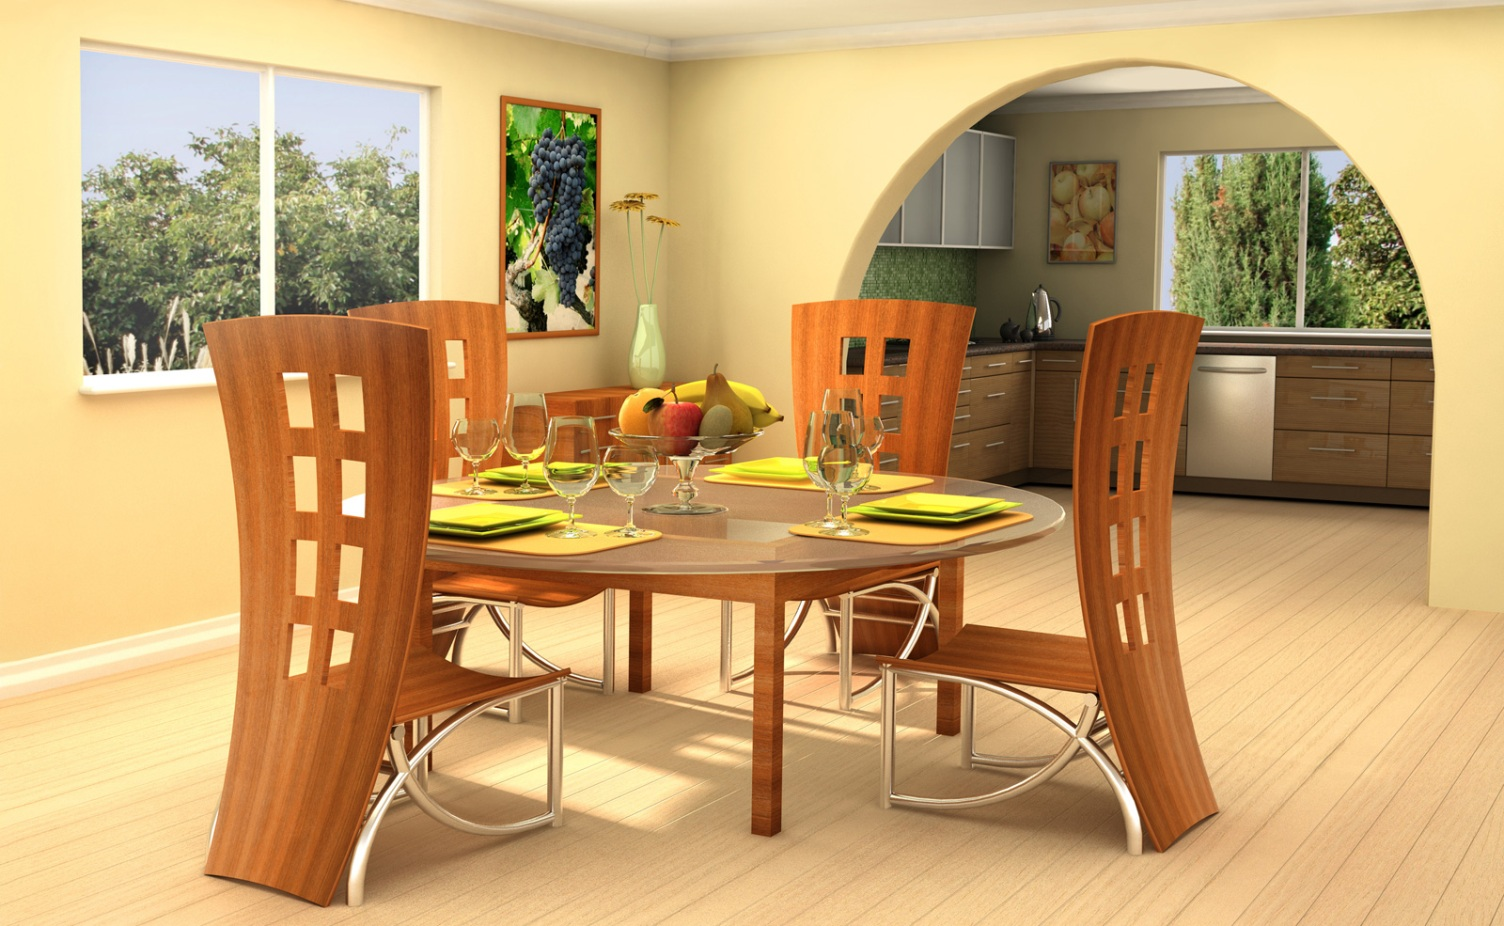 Go creative and pick unique dining room table and chairs for Unique dining room decor